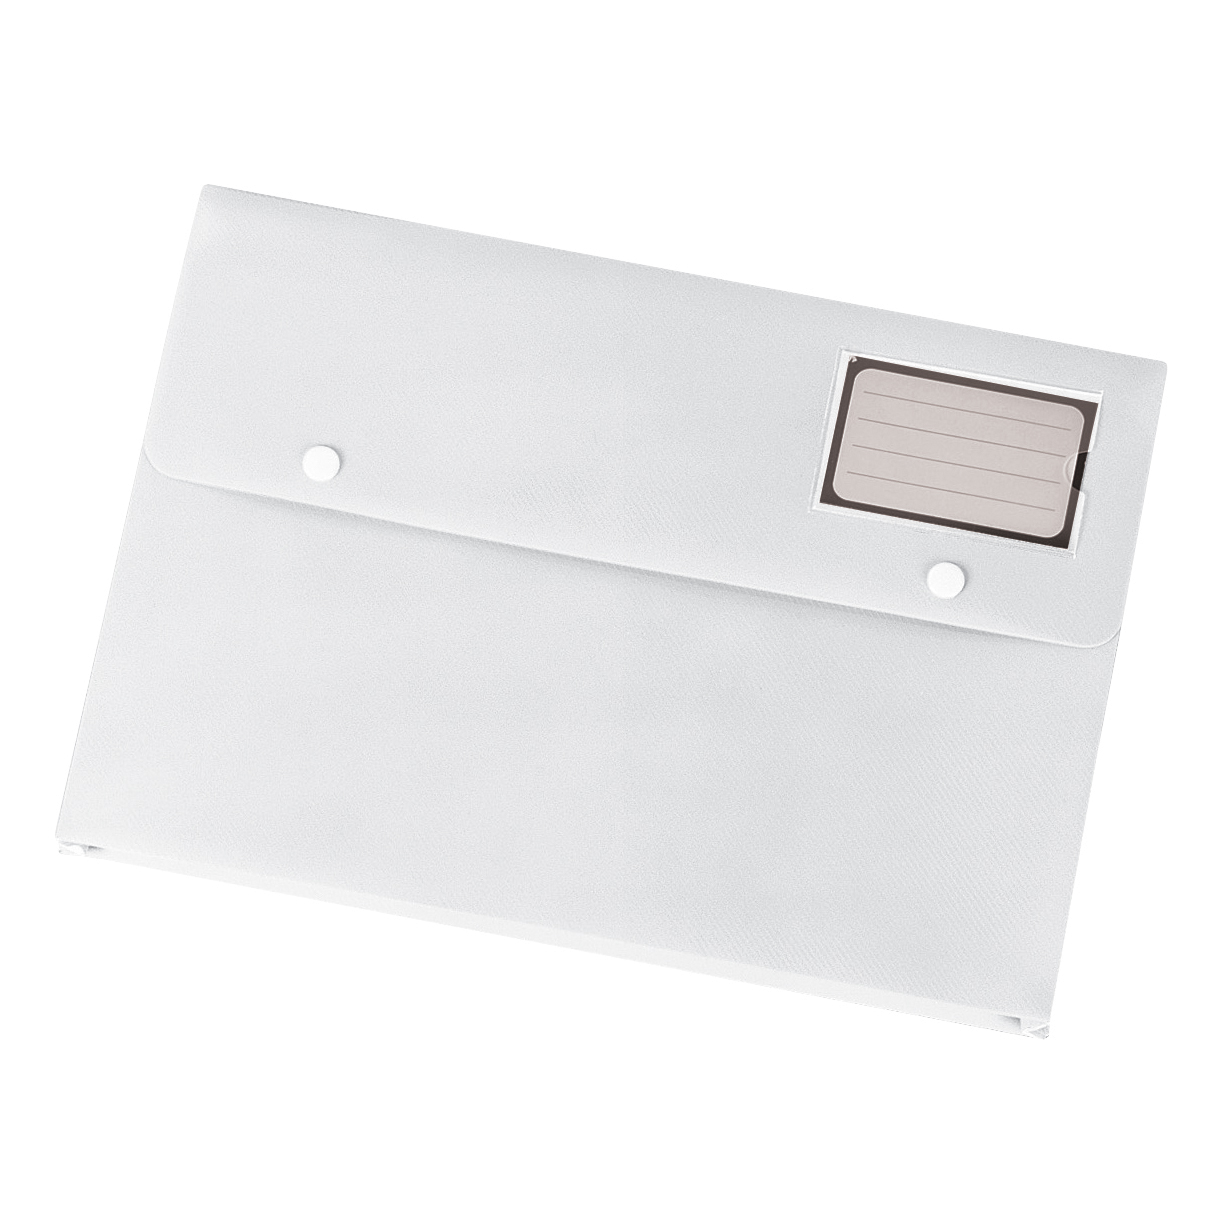 Popper Wallets 5 Star Office Document Wallet with Card Holder Polypropylene A4 White Pack 3